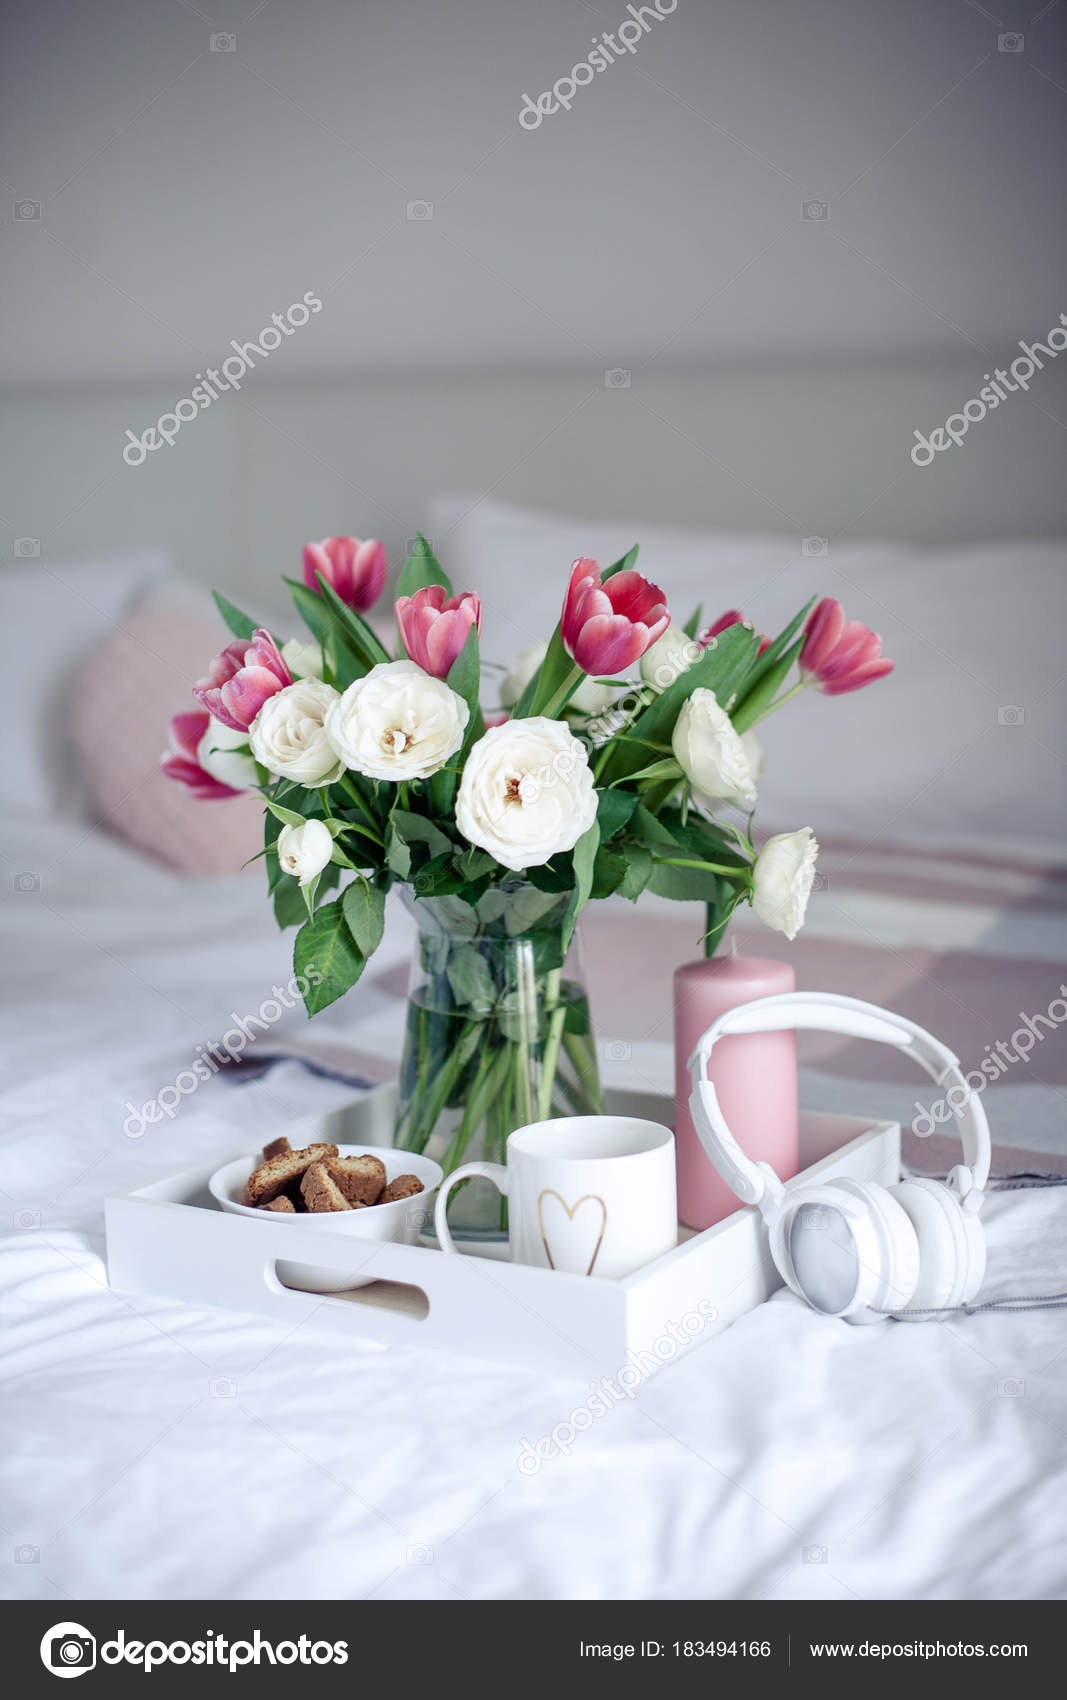 Romantic breakfast in bed bouquet of flowers roses and tulips romantic breakfast in bed bouquet of flowers roses and tulips spring valentines izmirmasajfo Choice Image